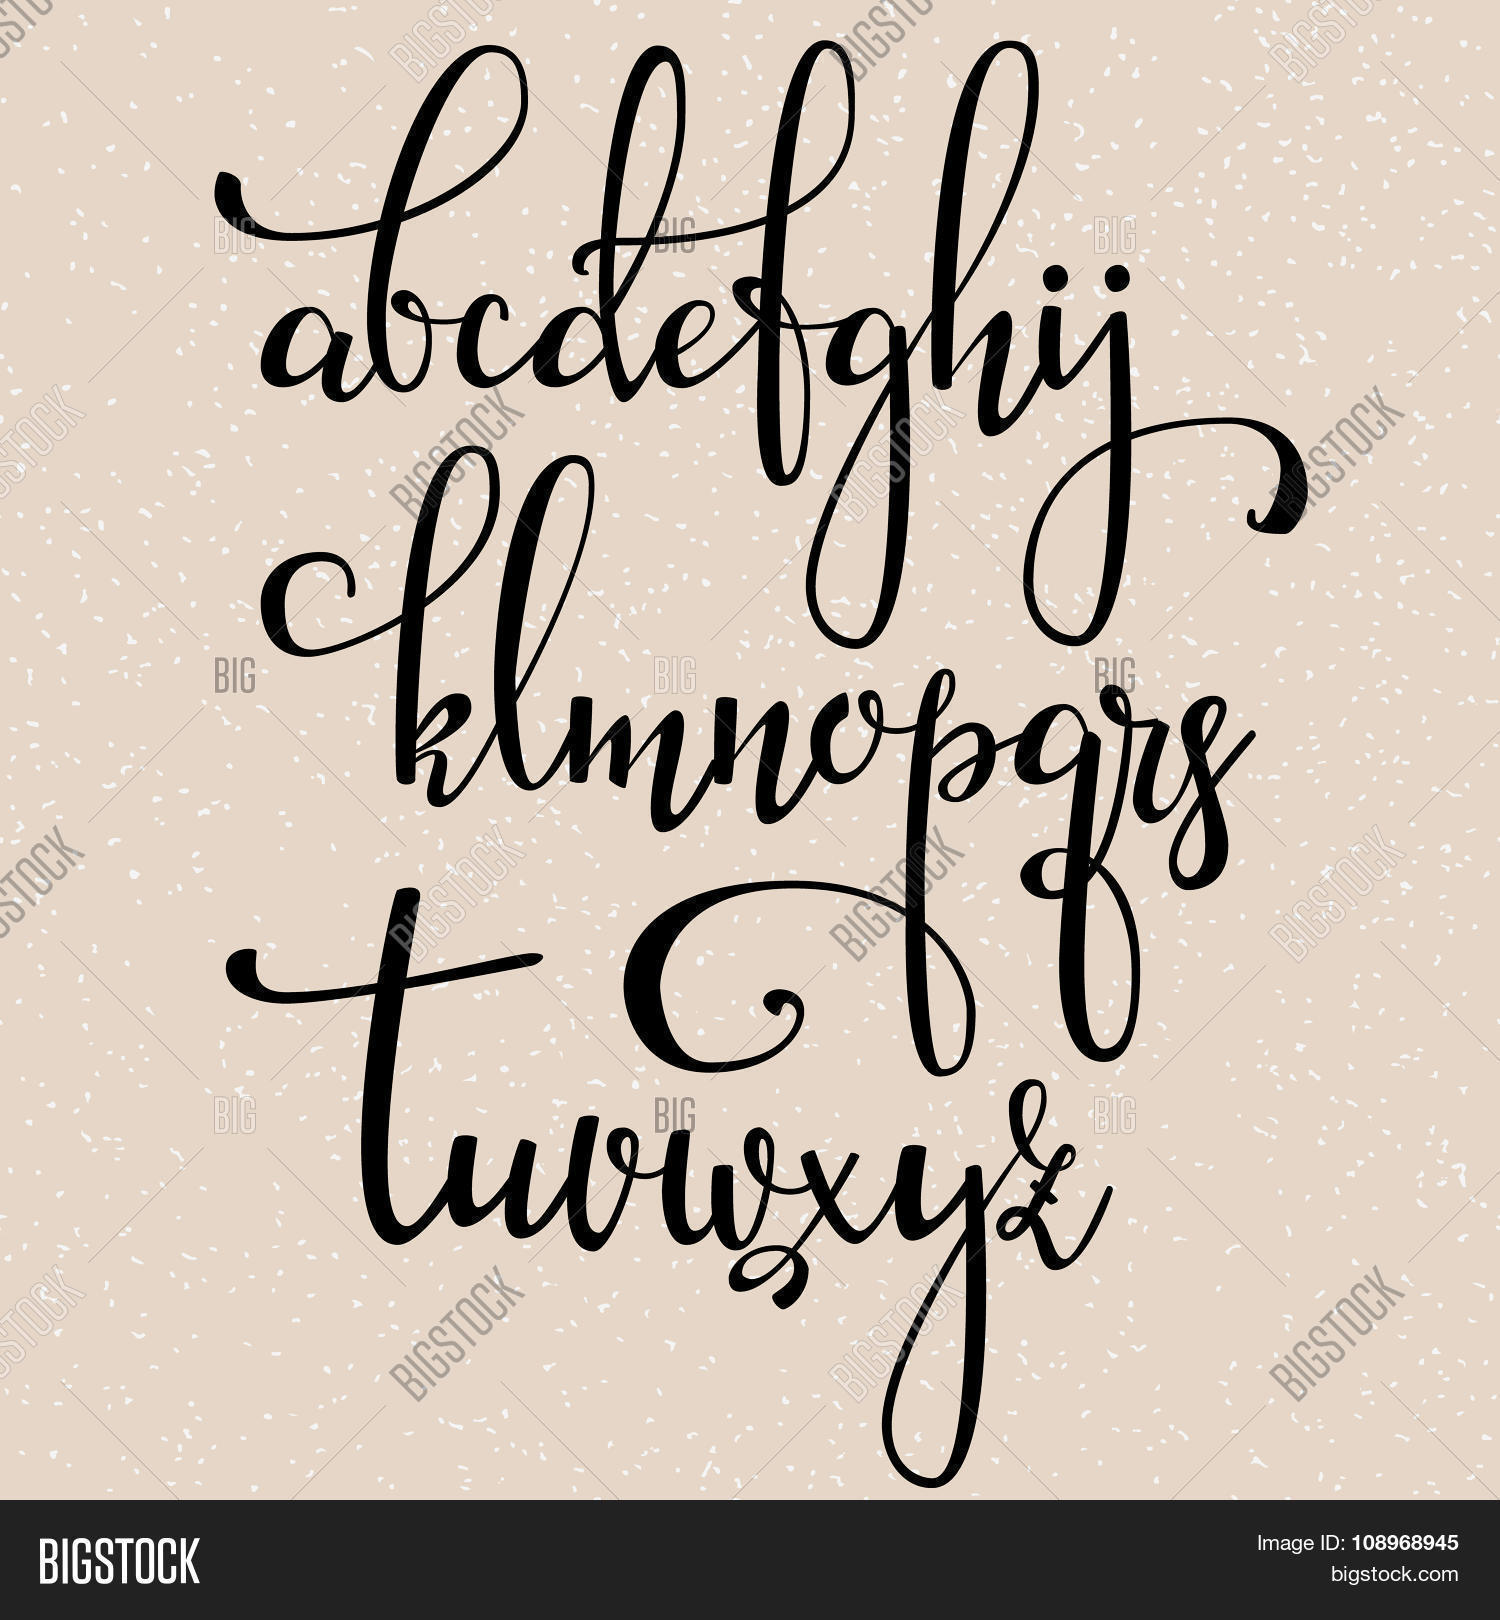 Calligraphy Font Modern Free Handwritten Brush Vector Photo Free Trial Bigstock